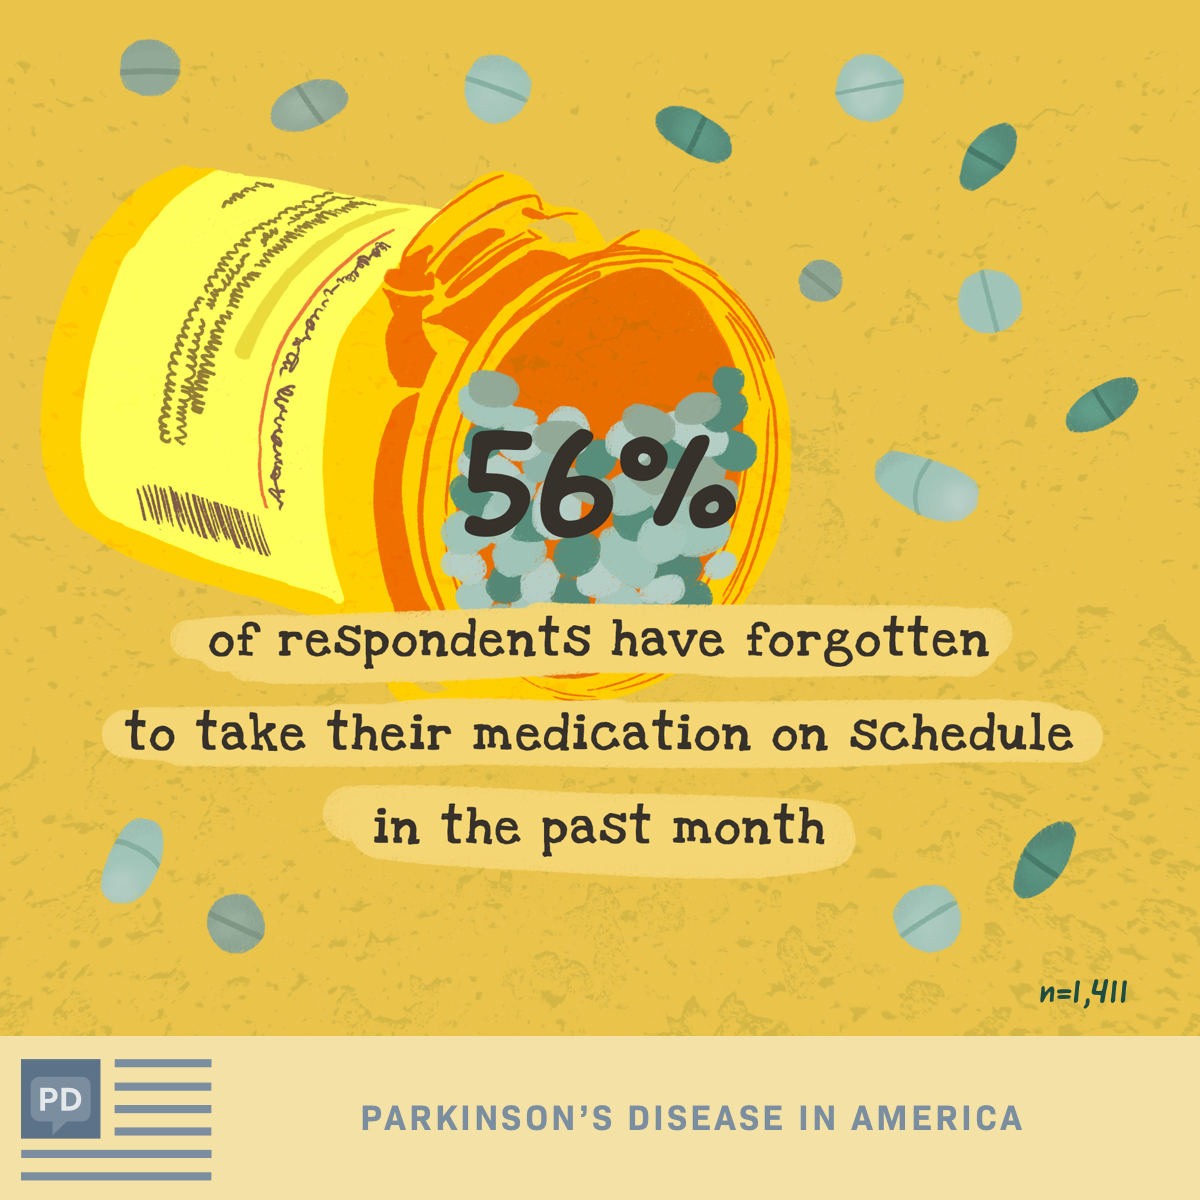 Percentage of survey respondents that have forgotten to take their medication on schedule in the last month